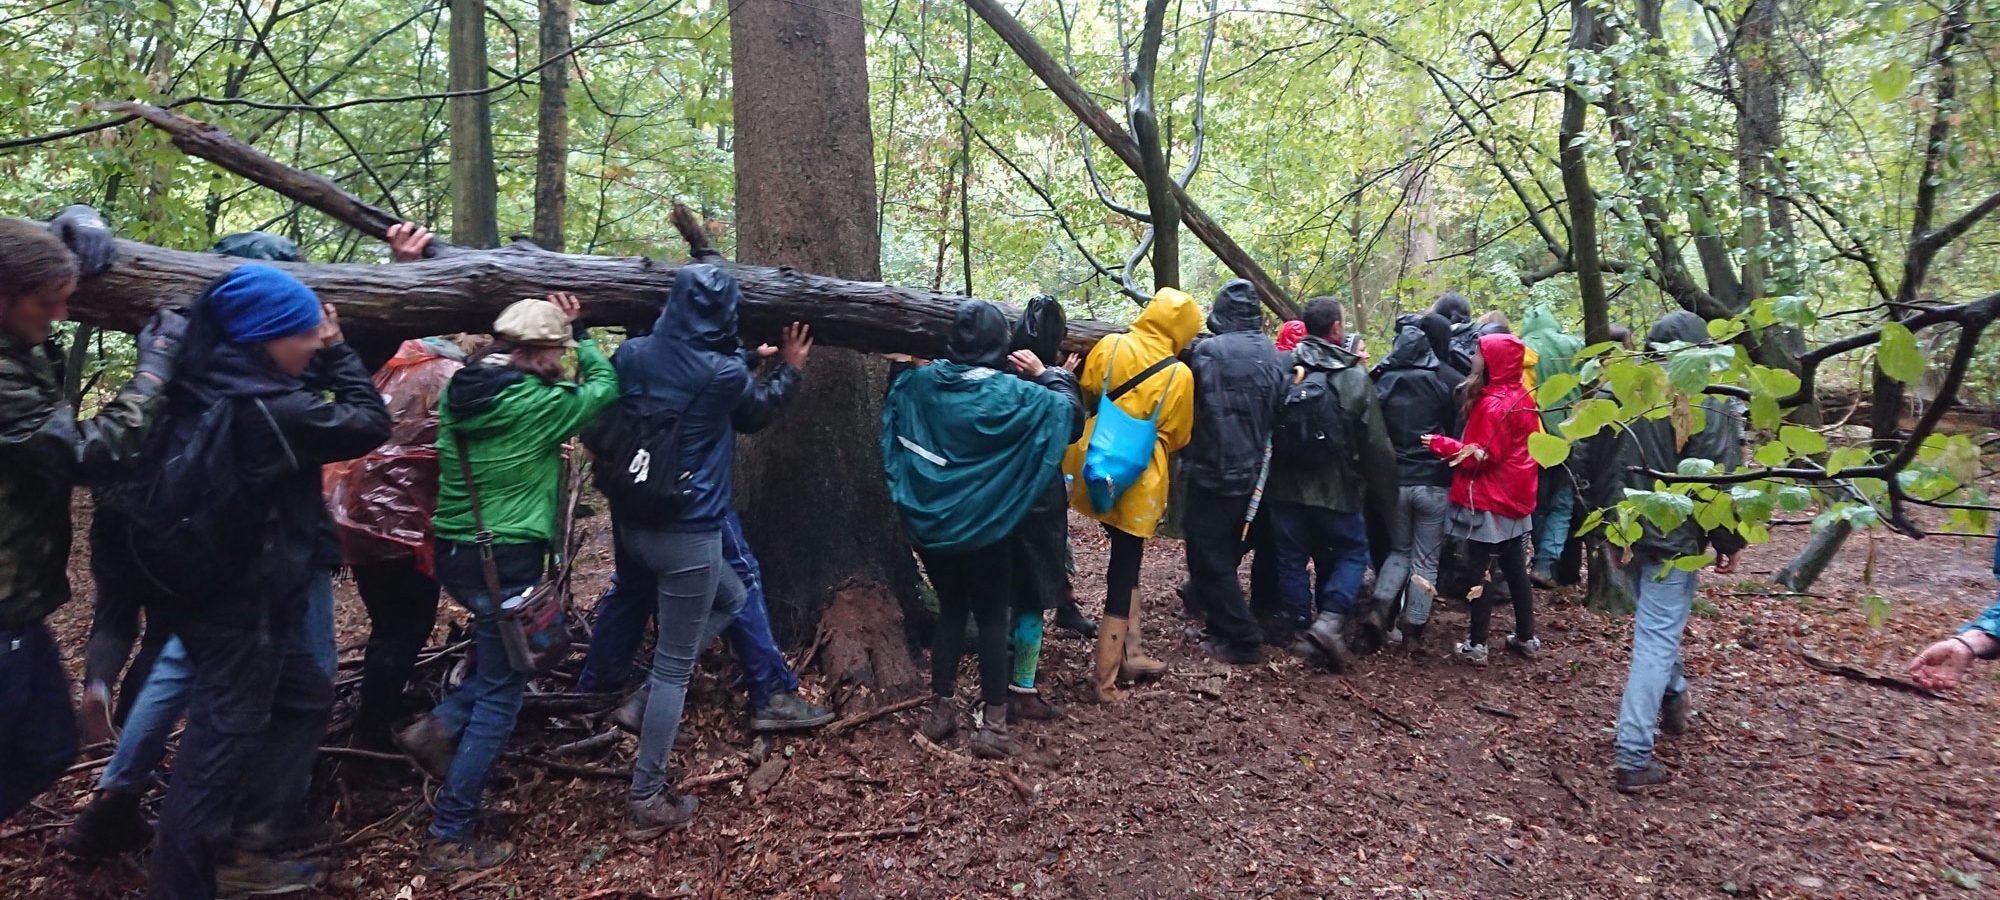 Aktion im Hambacher Forst am 23.09.2018